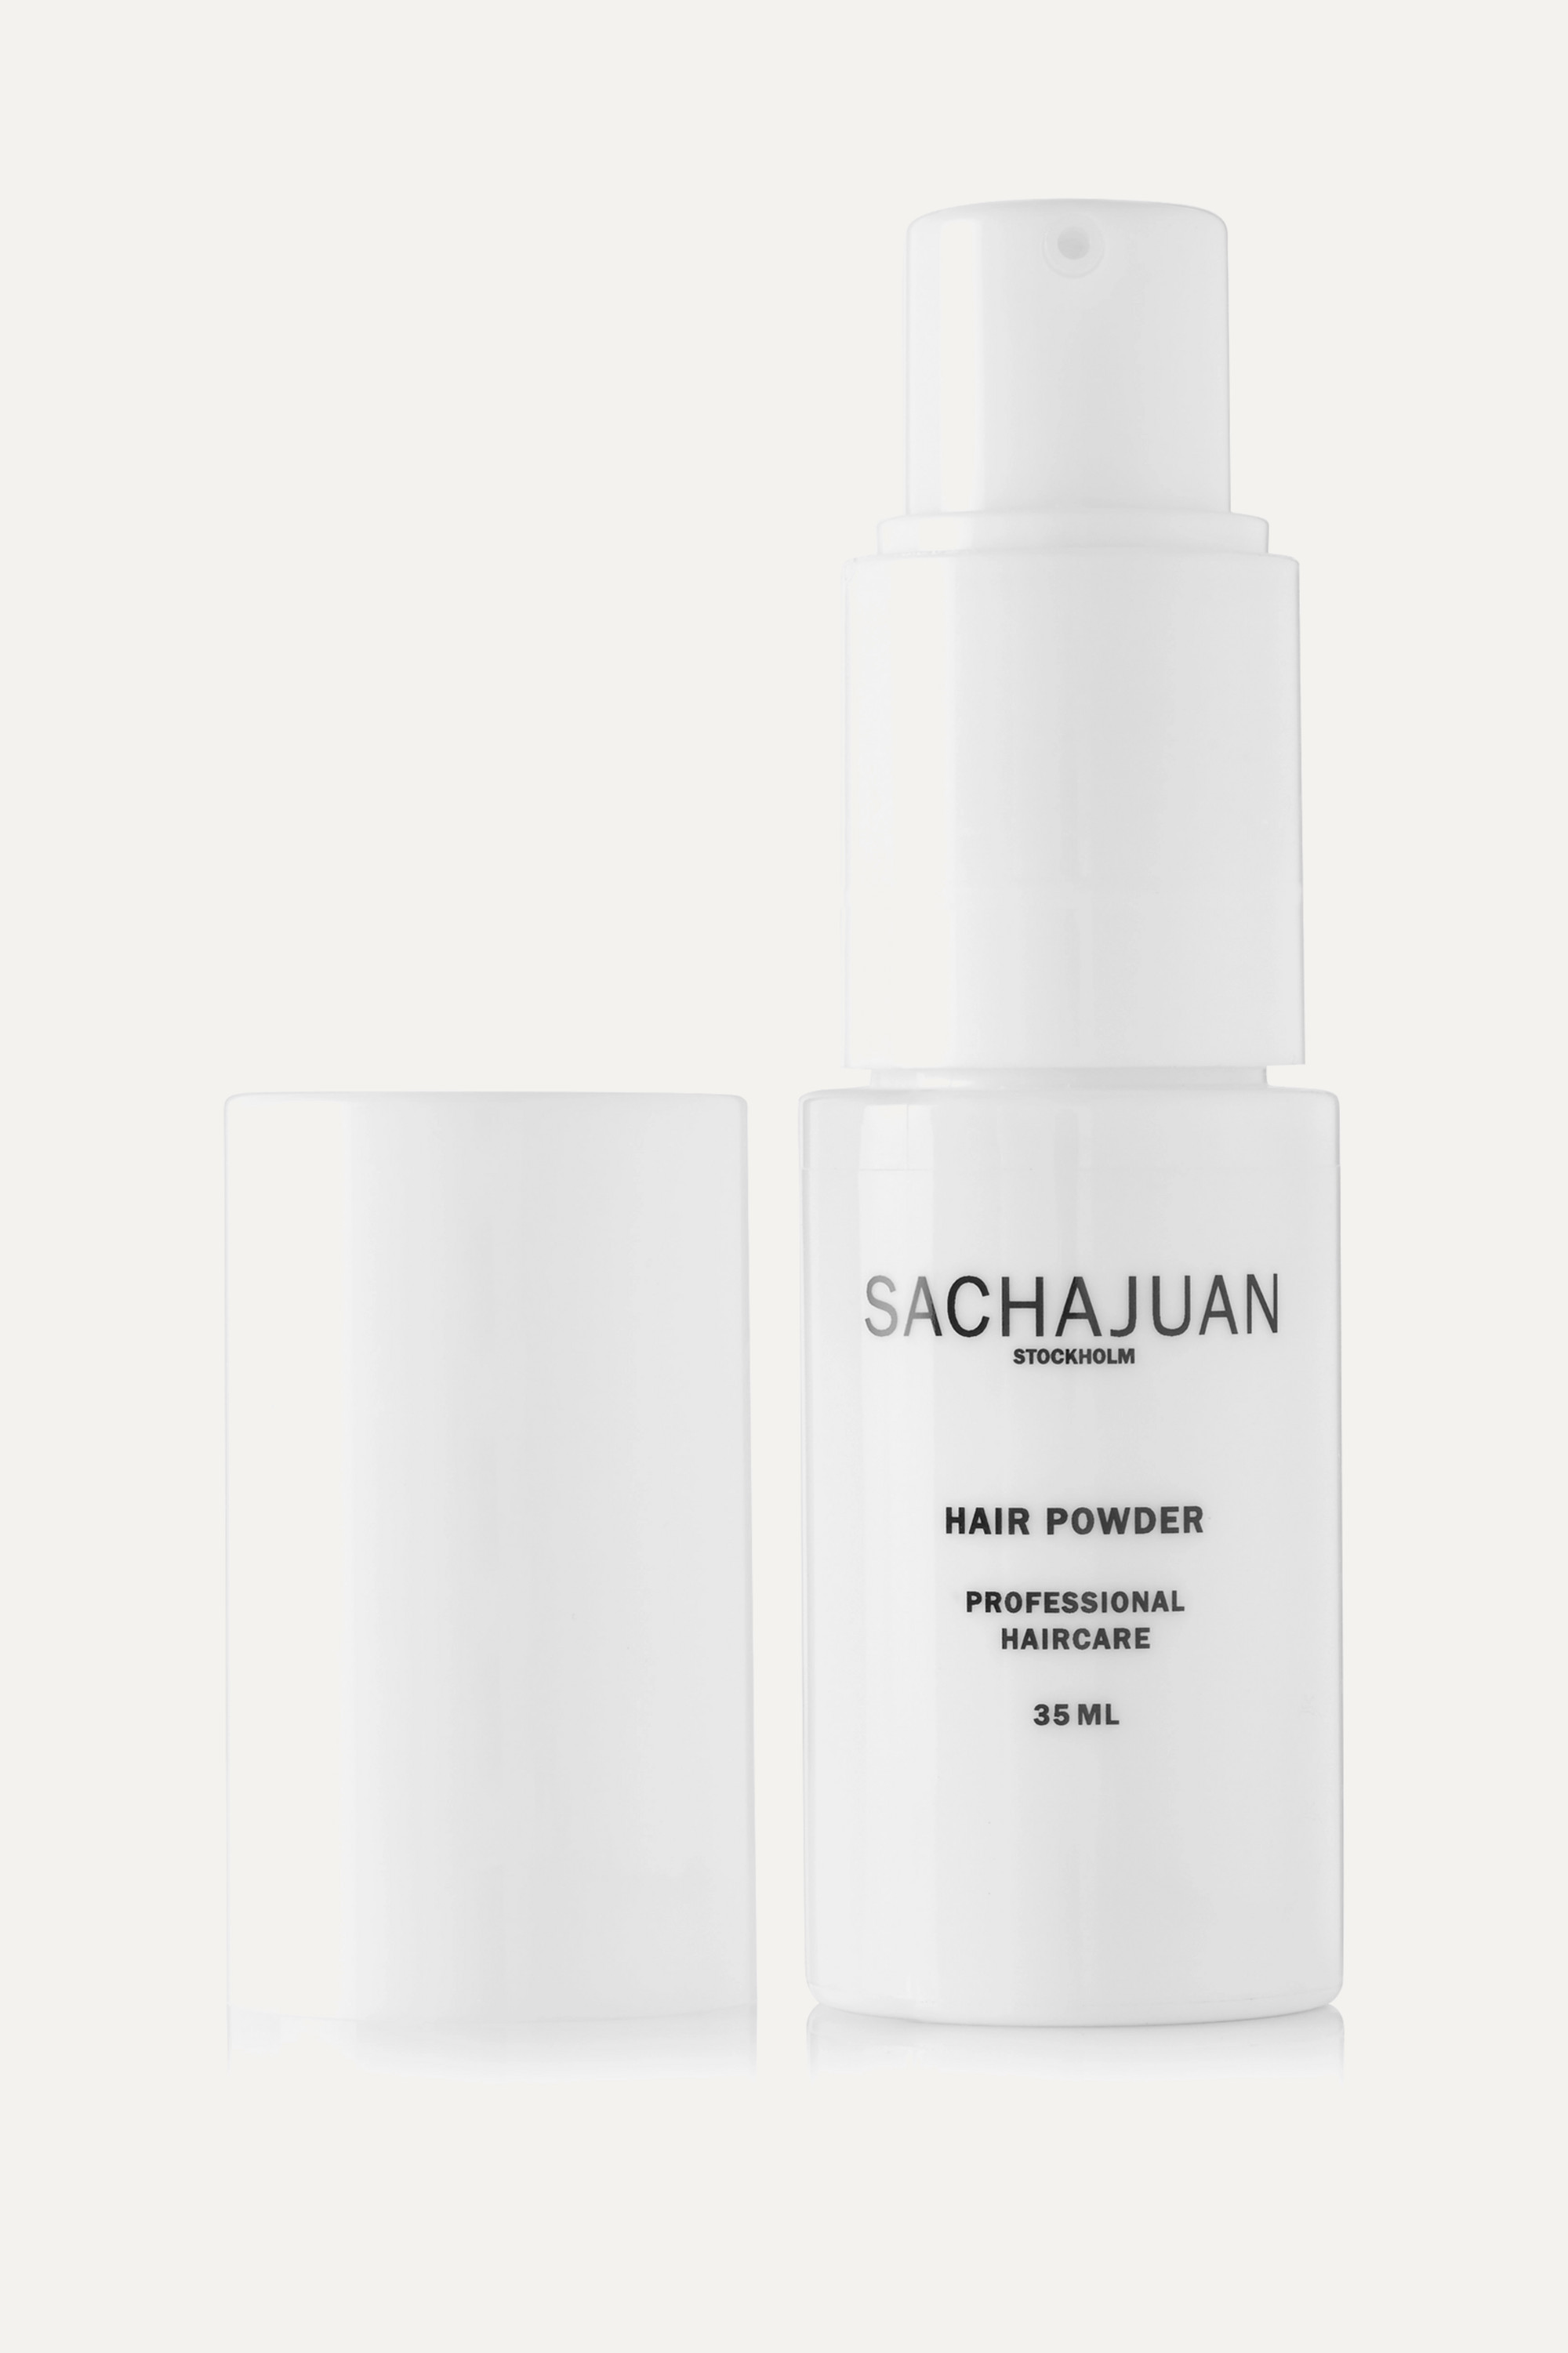 SACHAJUAN Hair Powder, 35ml